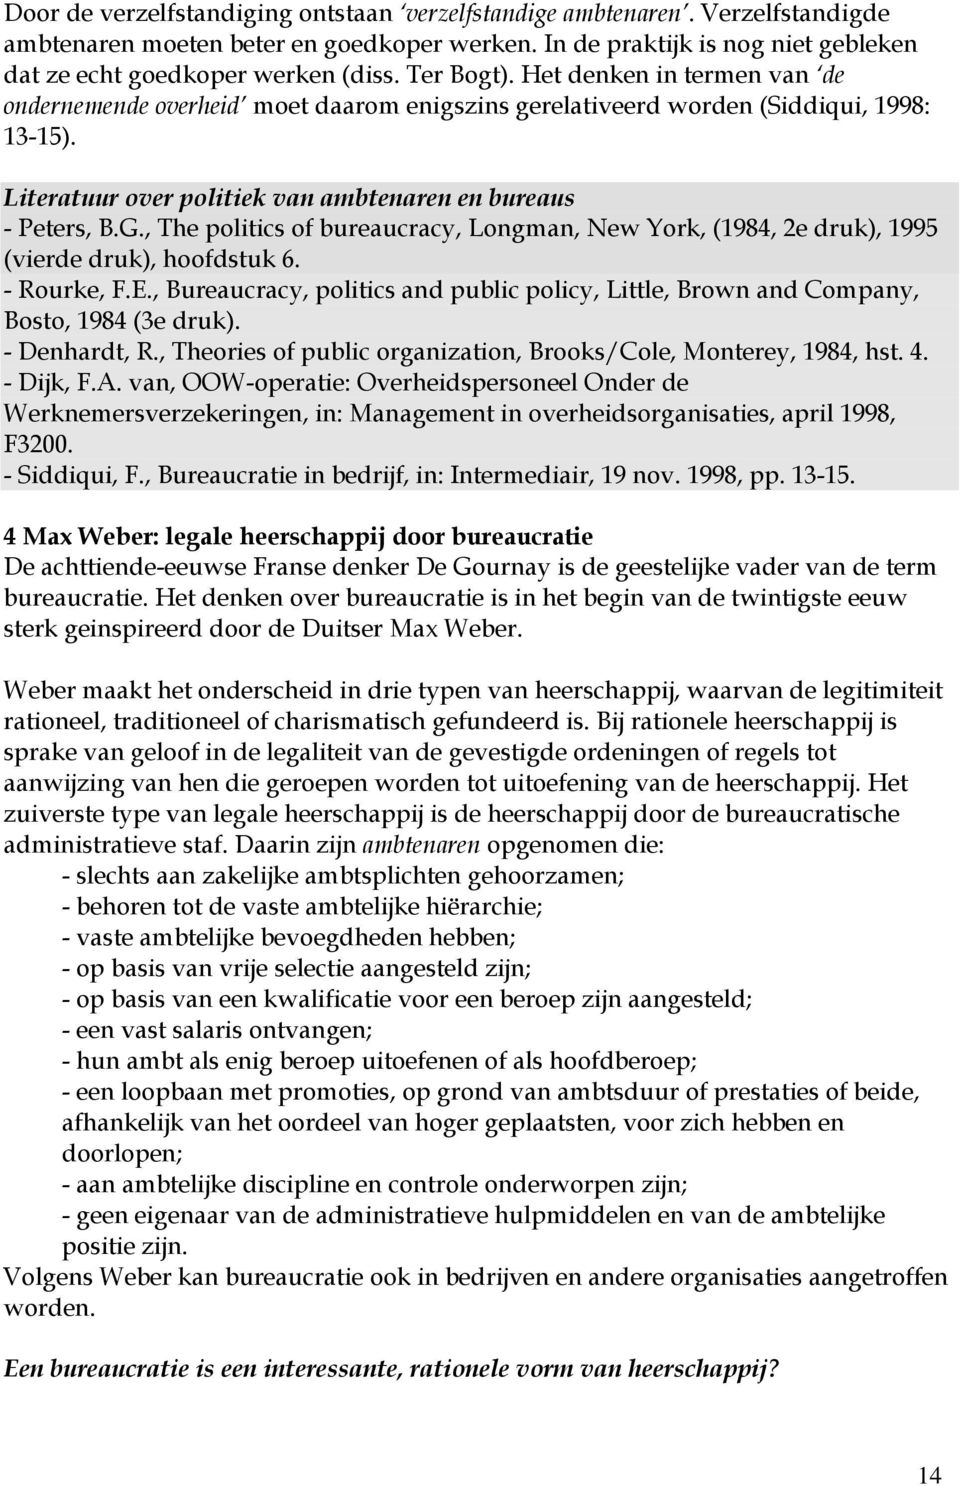 , The politics of bureaucracy, Longman, New York, (1984, 2e druk), 1995 (vierde druk), hoofdstuk 6. - Rourke, F.E.